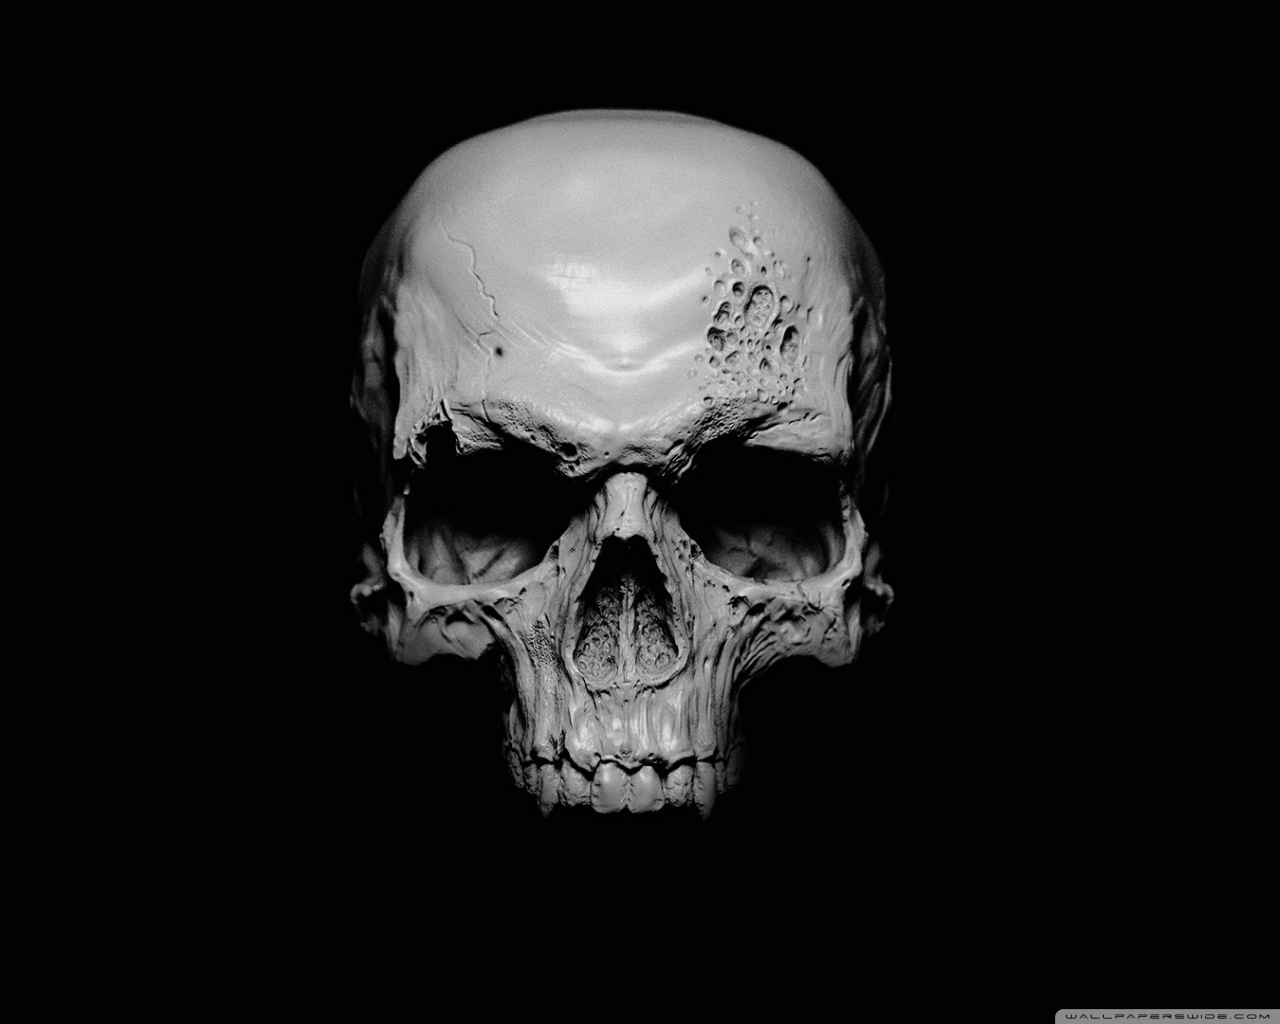 Optical Illusion Wallpaper Iphone X Skull 4k Hd Desktop Wallpaper For 4k Ultra Hd Tv Wide